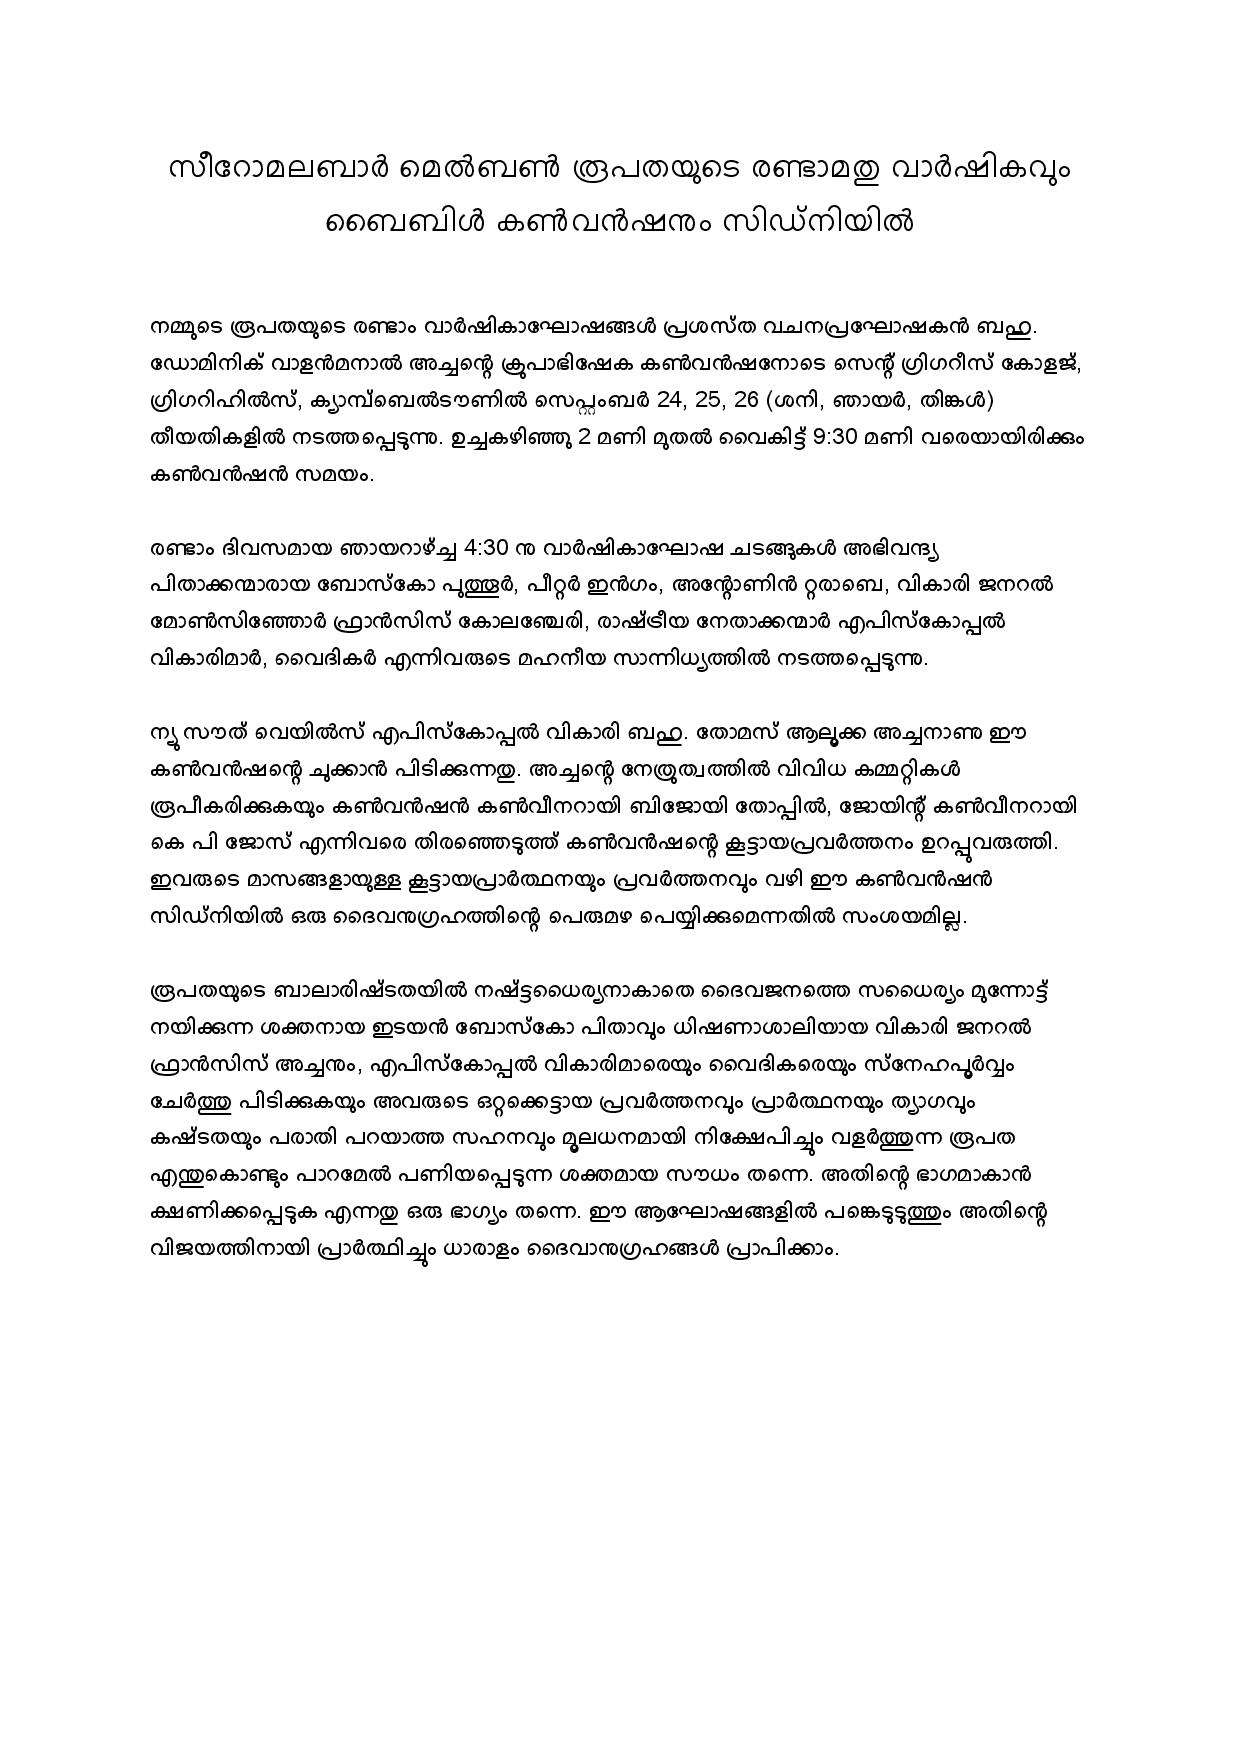 Write-up in Malayalam (Final) by Betty Thalody - Krupabhishekam Convention 2016-page-001